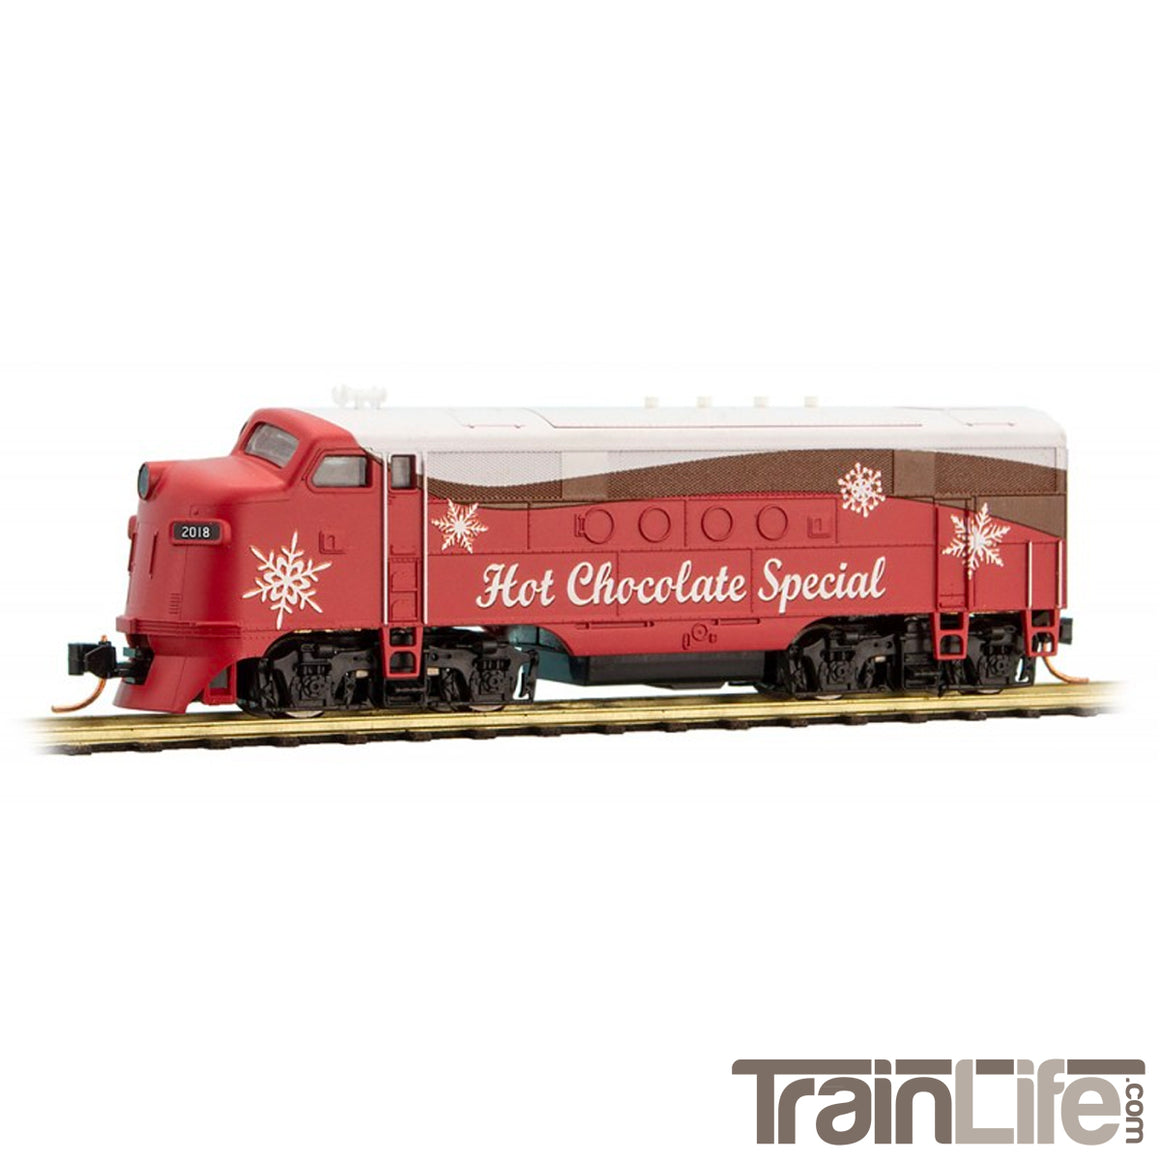 N Scale: Hot Chocolate Special Christmas Train